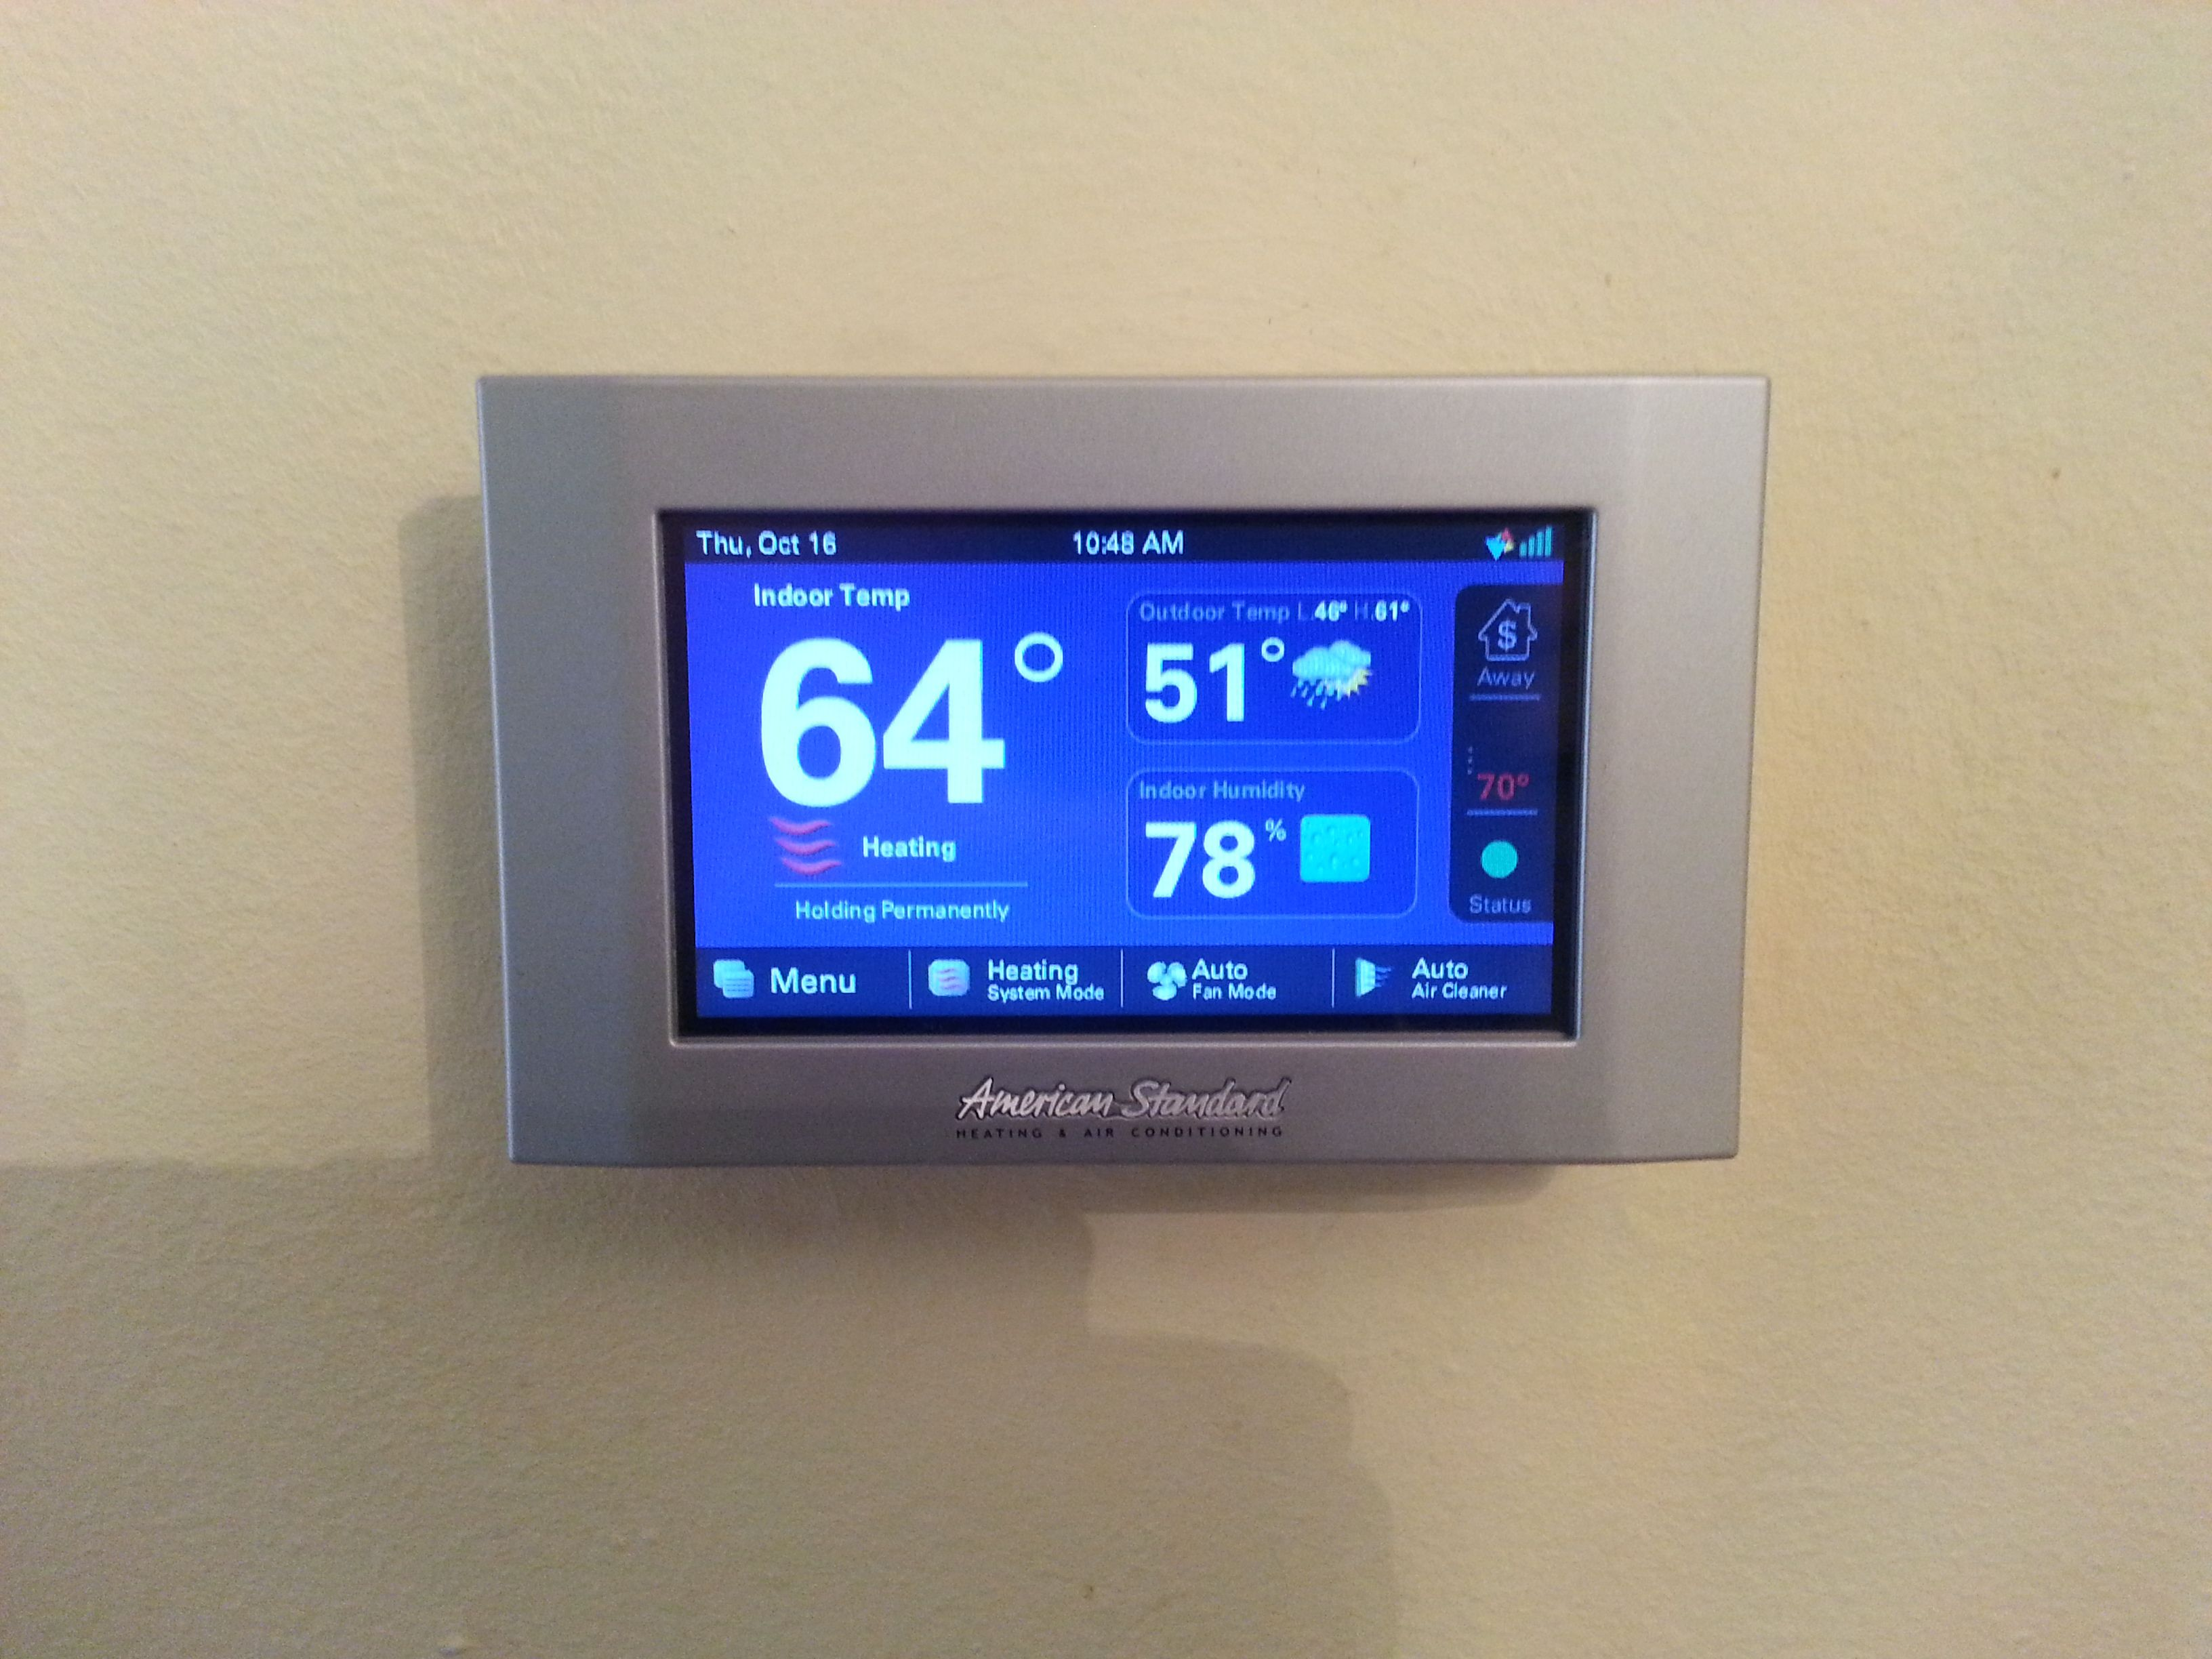 American Standard Gold 824 Thermostat, 5 day weather forecast, Nexia ...